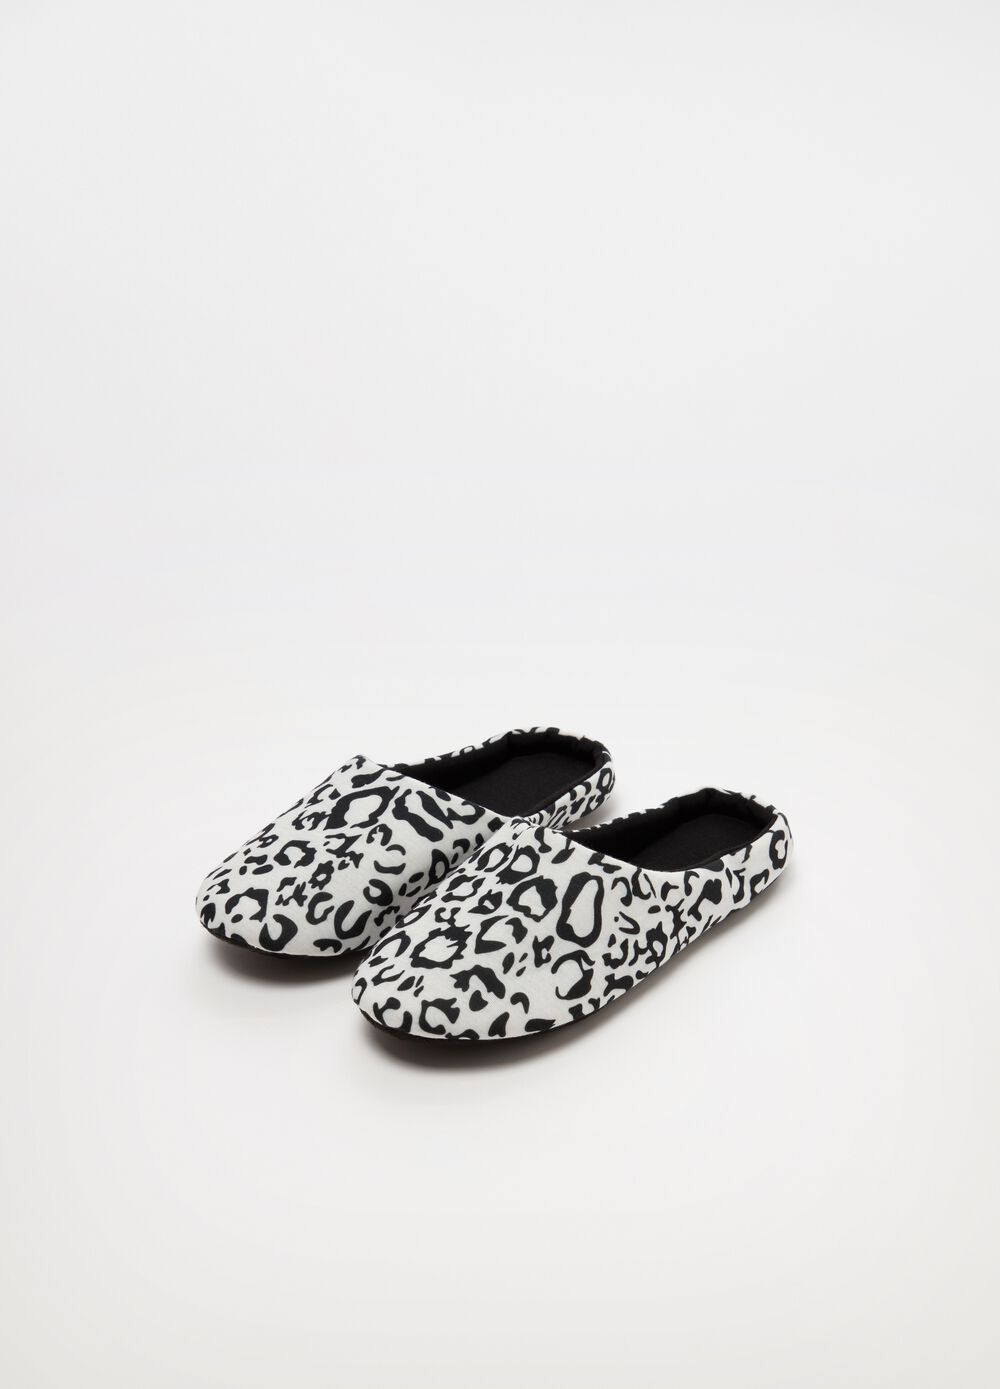 Slippers with animal print pattern and flat heel